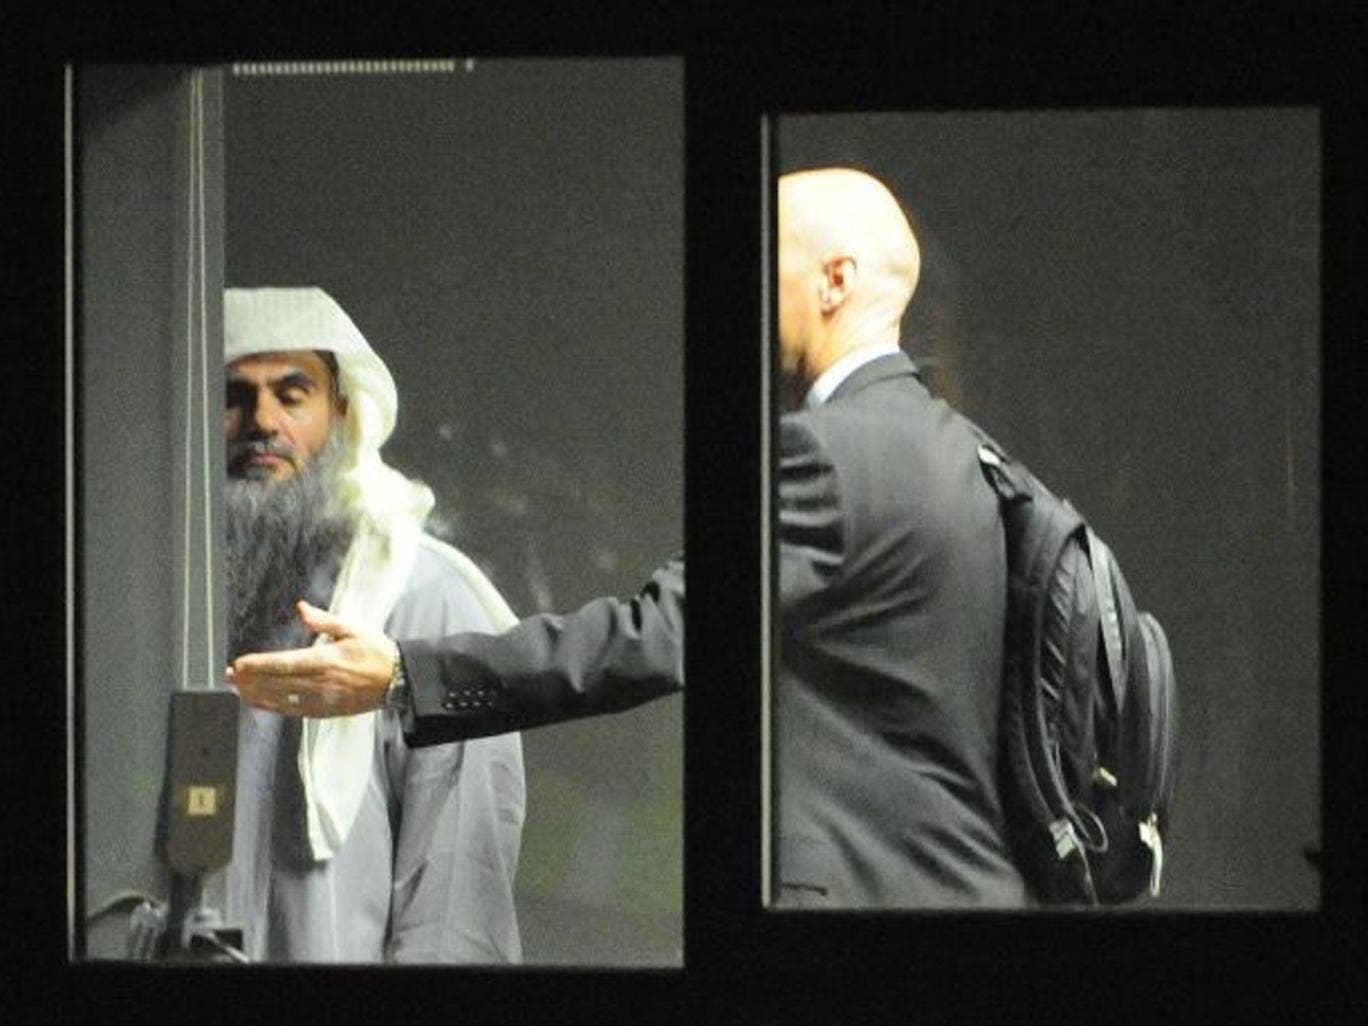 A photograph issued by the Ministry of Defence of Abu Qatada (left) at RAF Northolt in West London where he boarded a private flight bound for Jordan